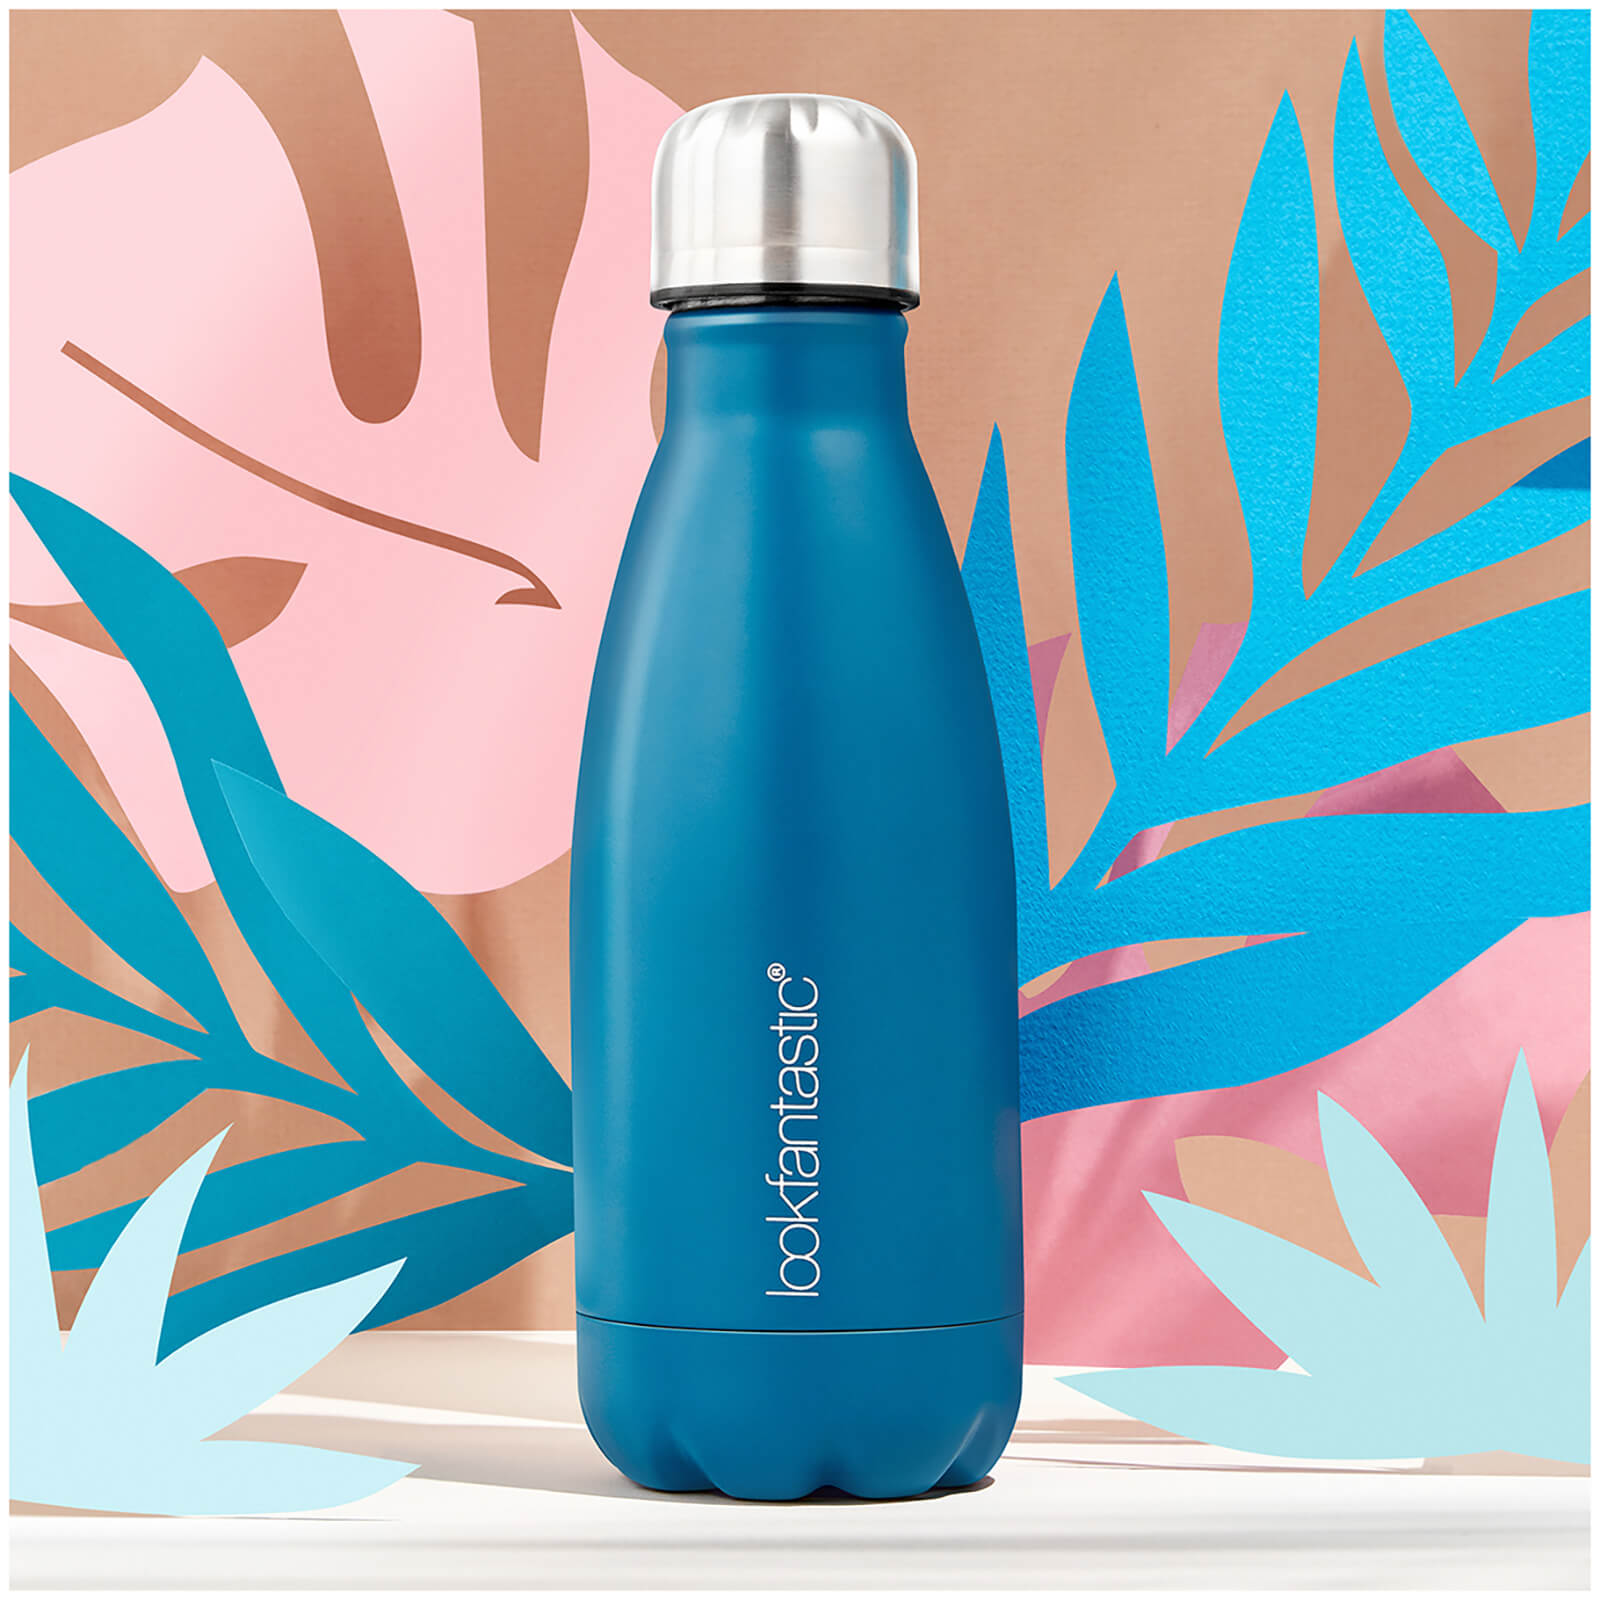 495db9fe8d42 lookfantastic Stainless Steel Water Bottle | Free Shipping | Lookfantastic